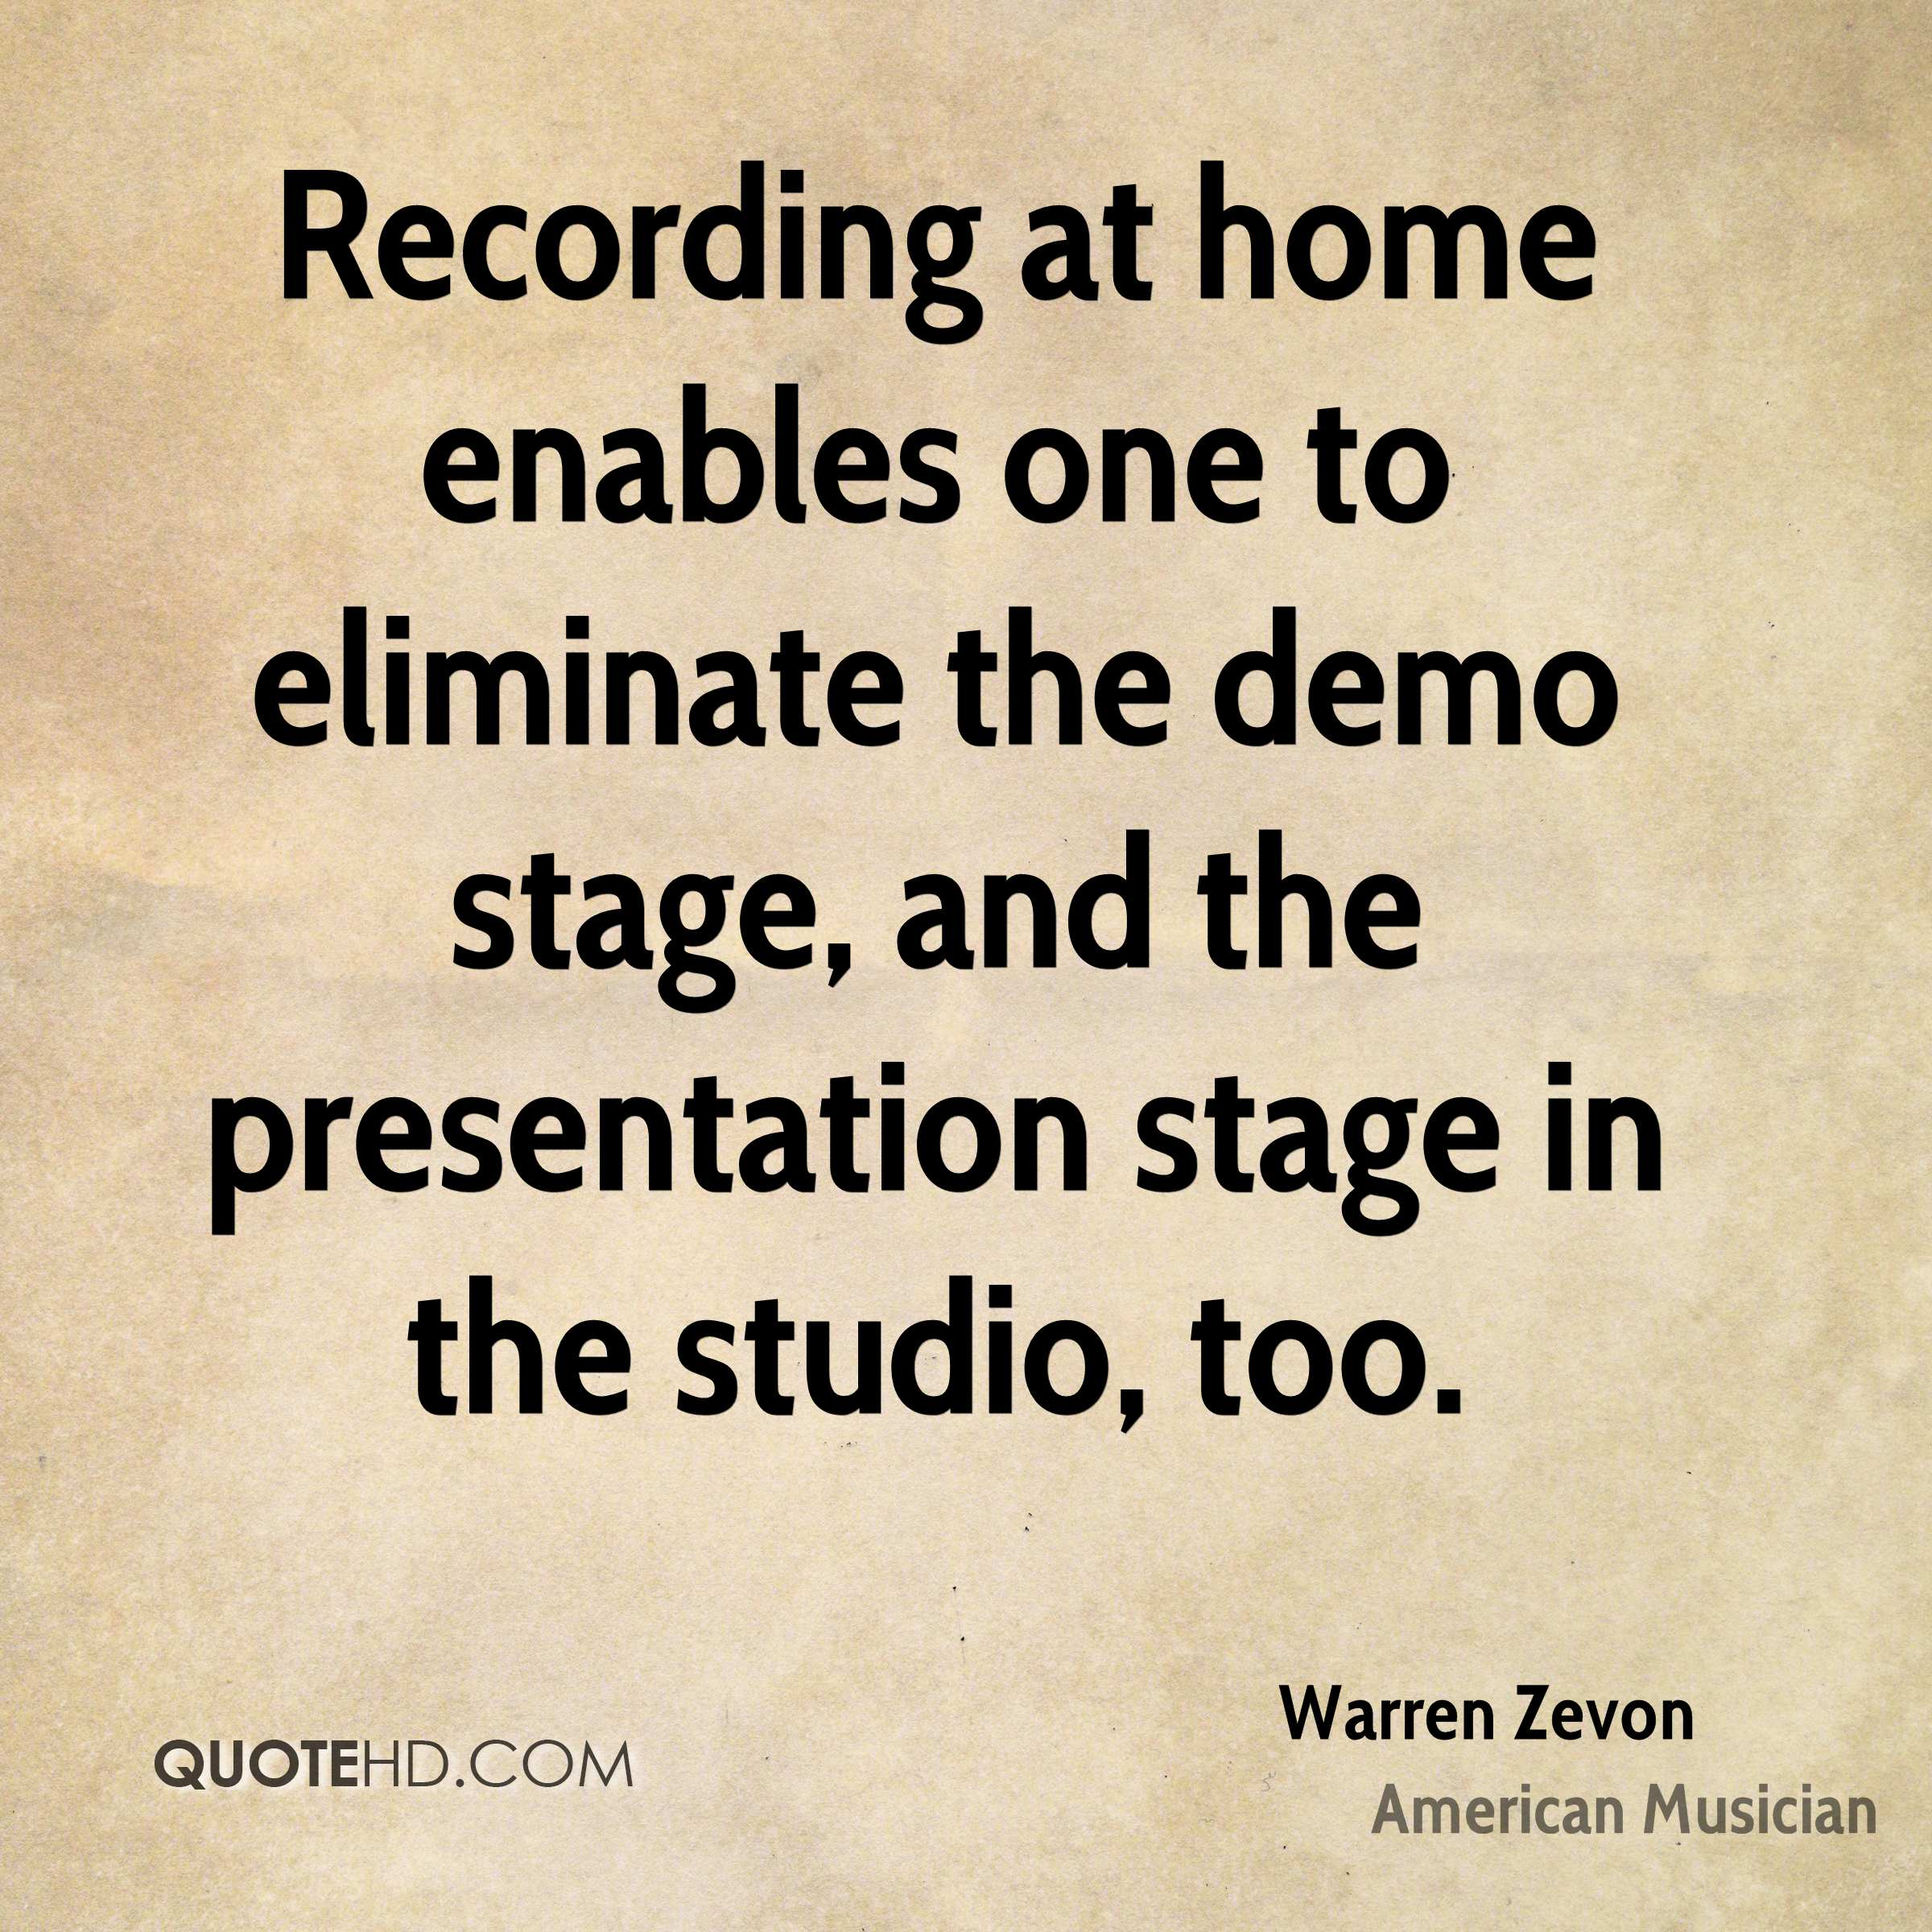 Recording at home enables one to eliminate the demo stage, and the presentation stage in the studio, too.